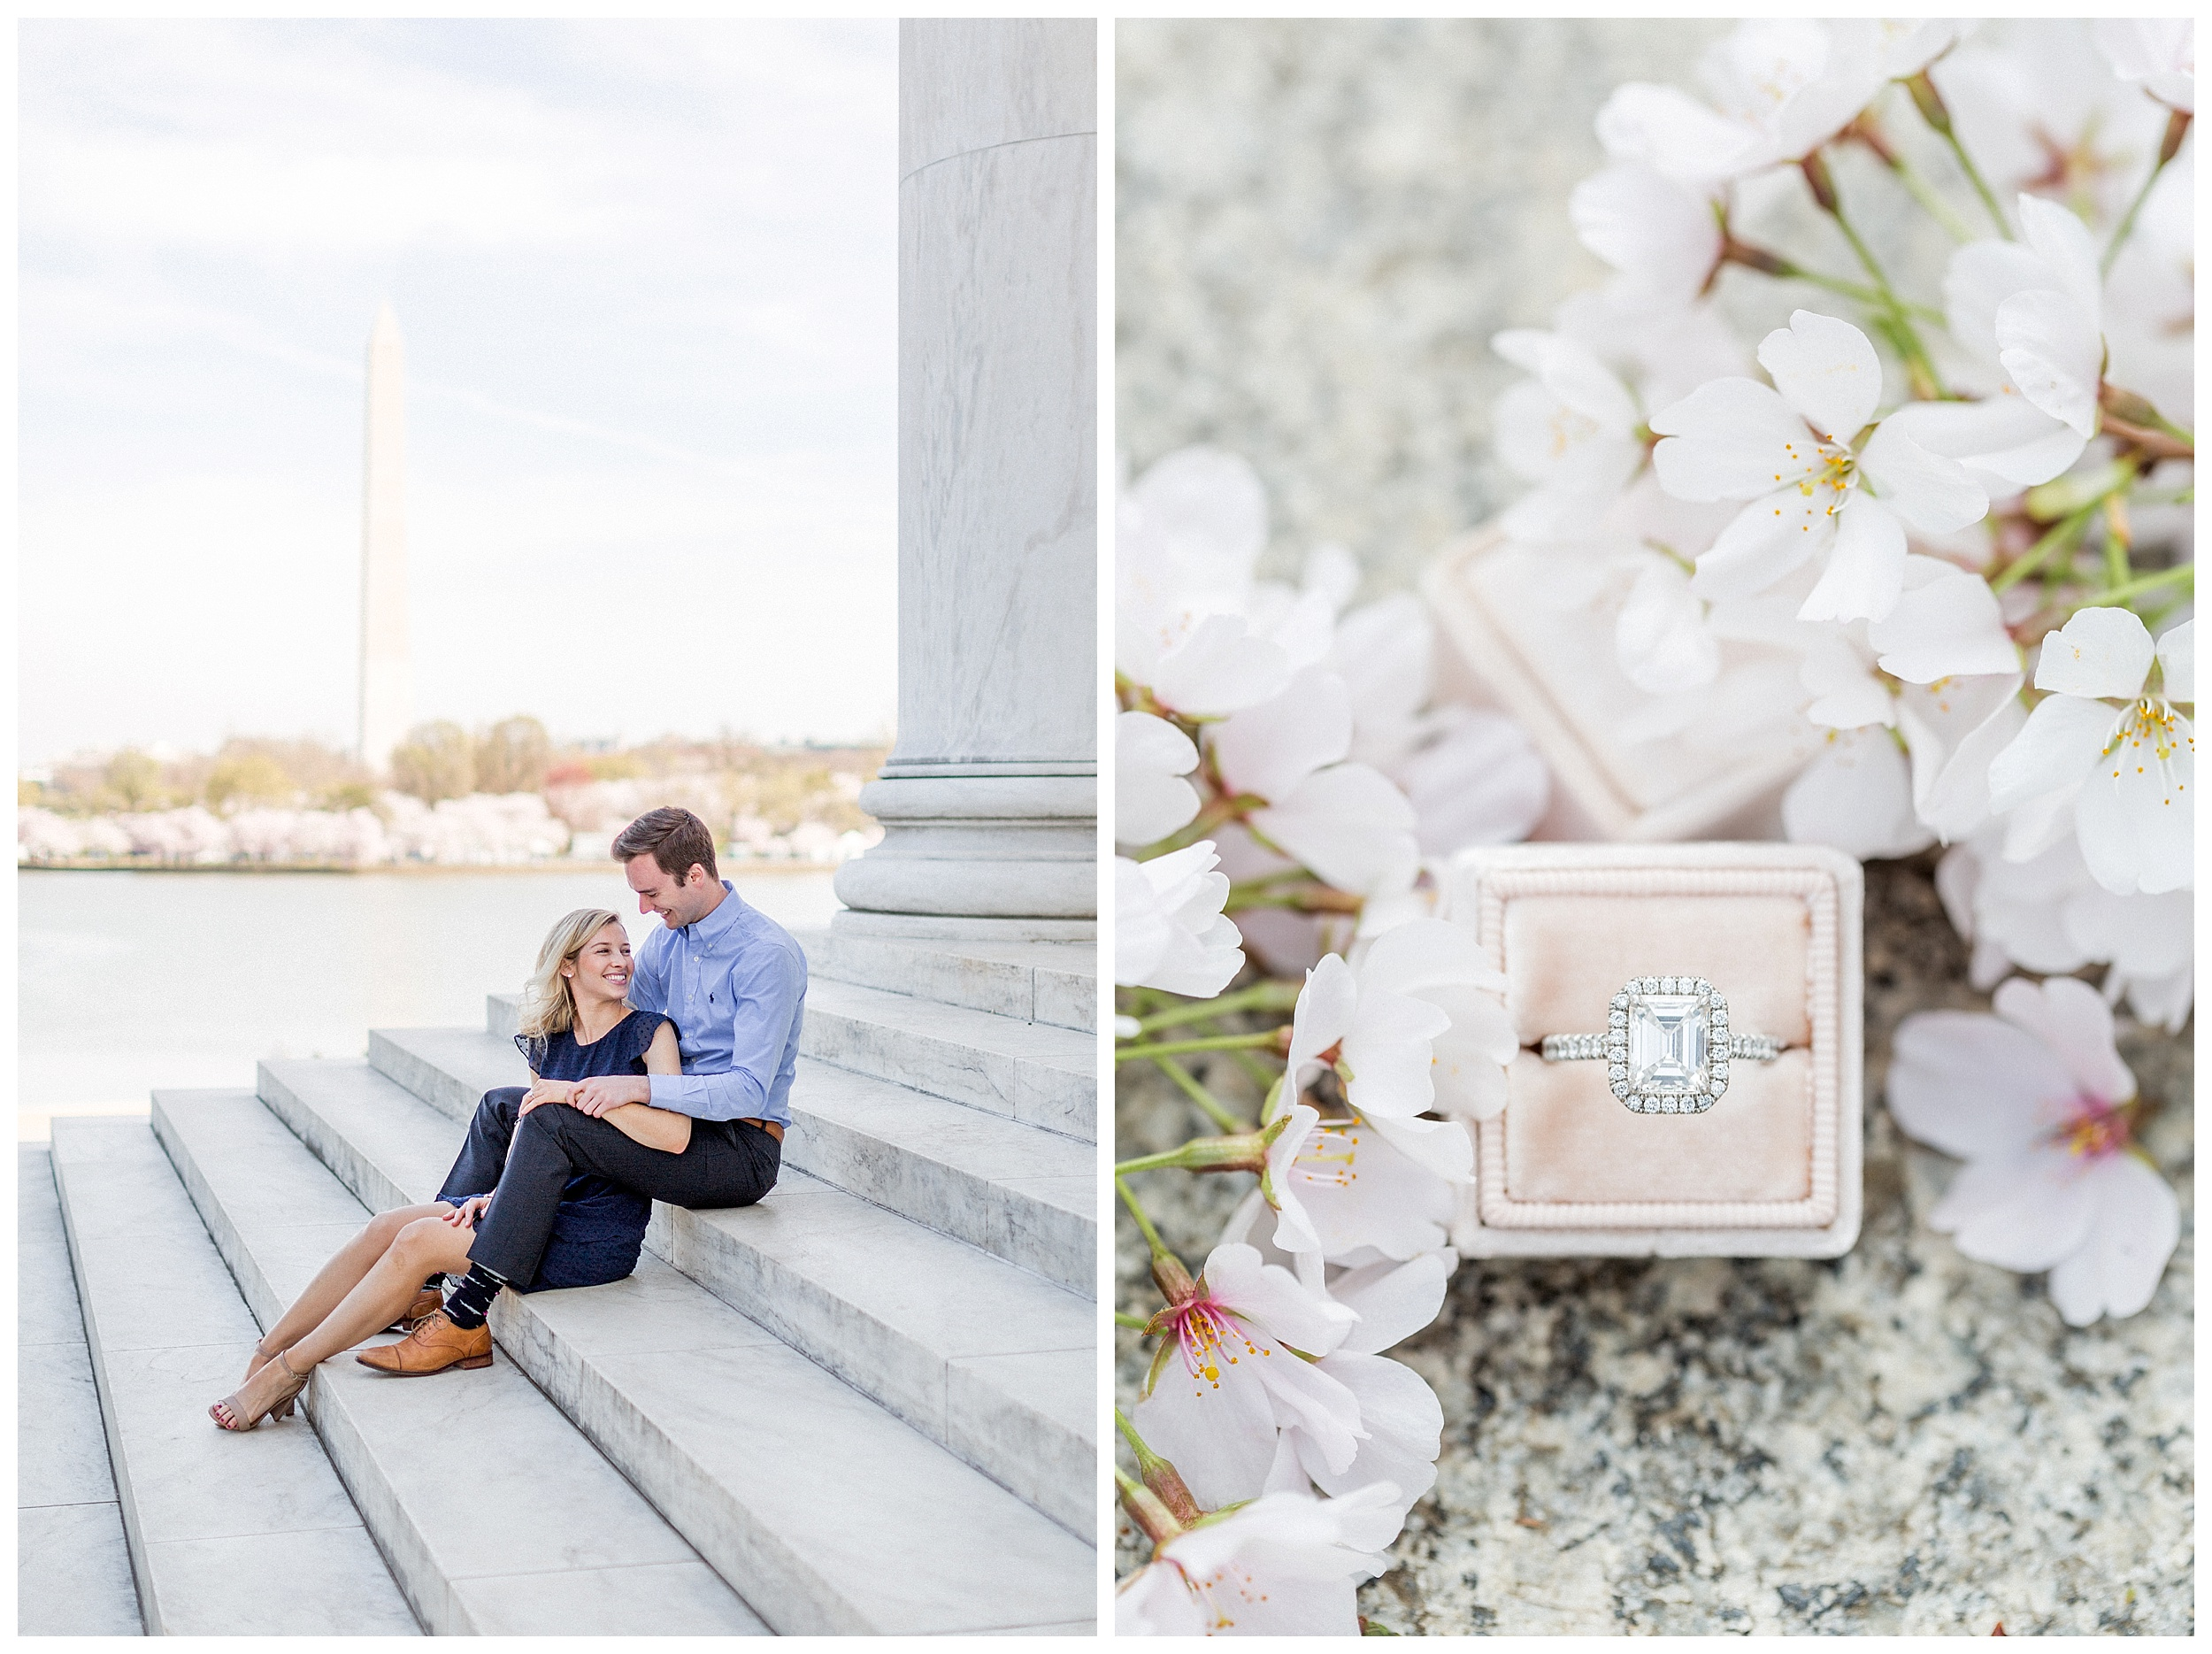 District of Columbia Cherry Blossom Engagement Session_0004.jpg